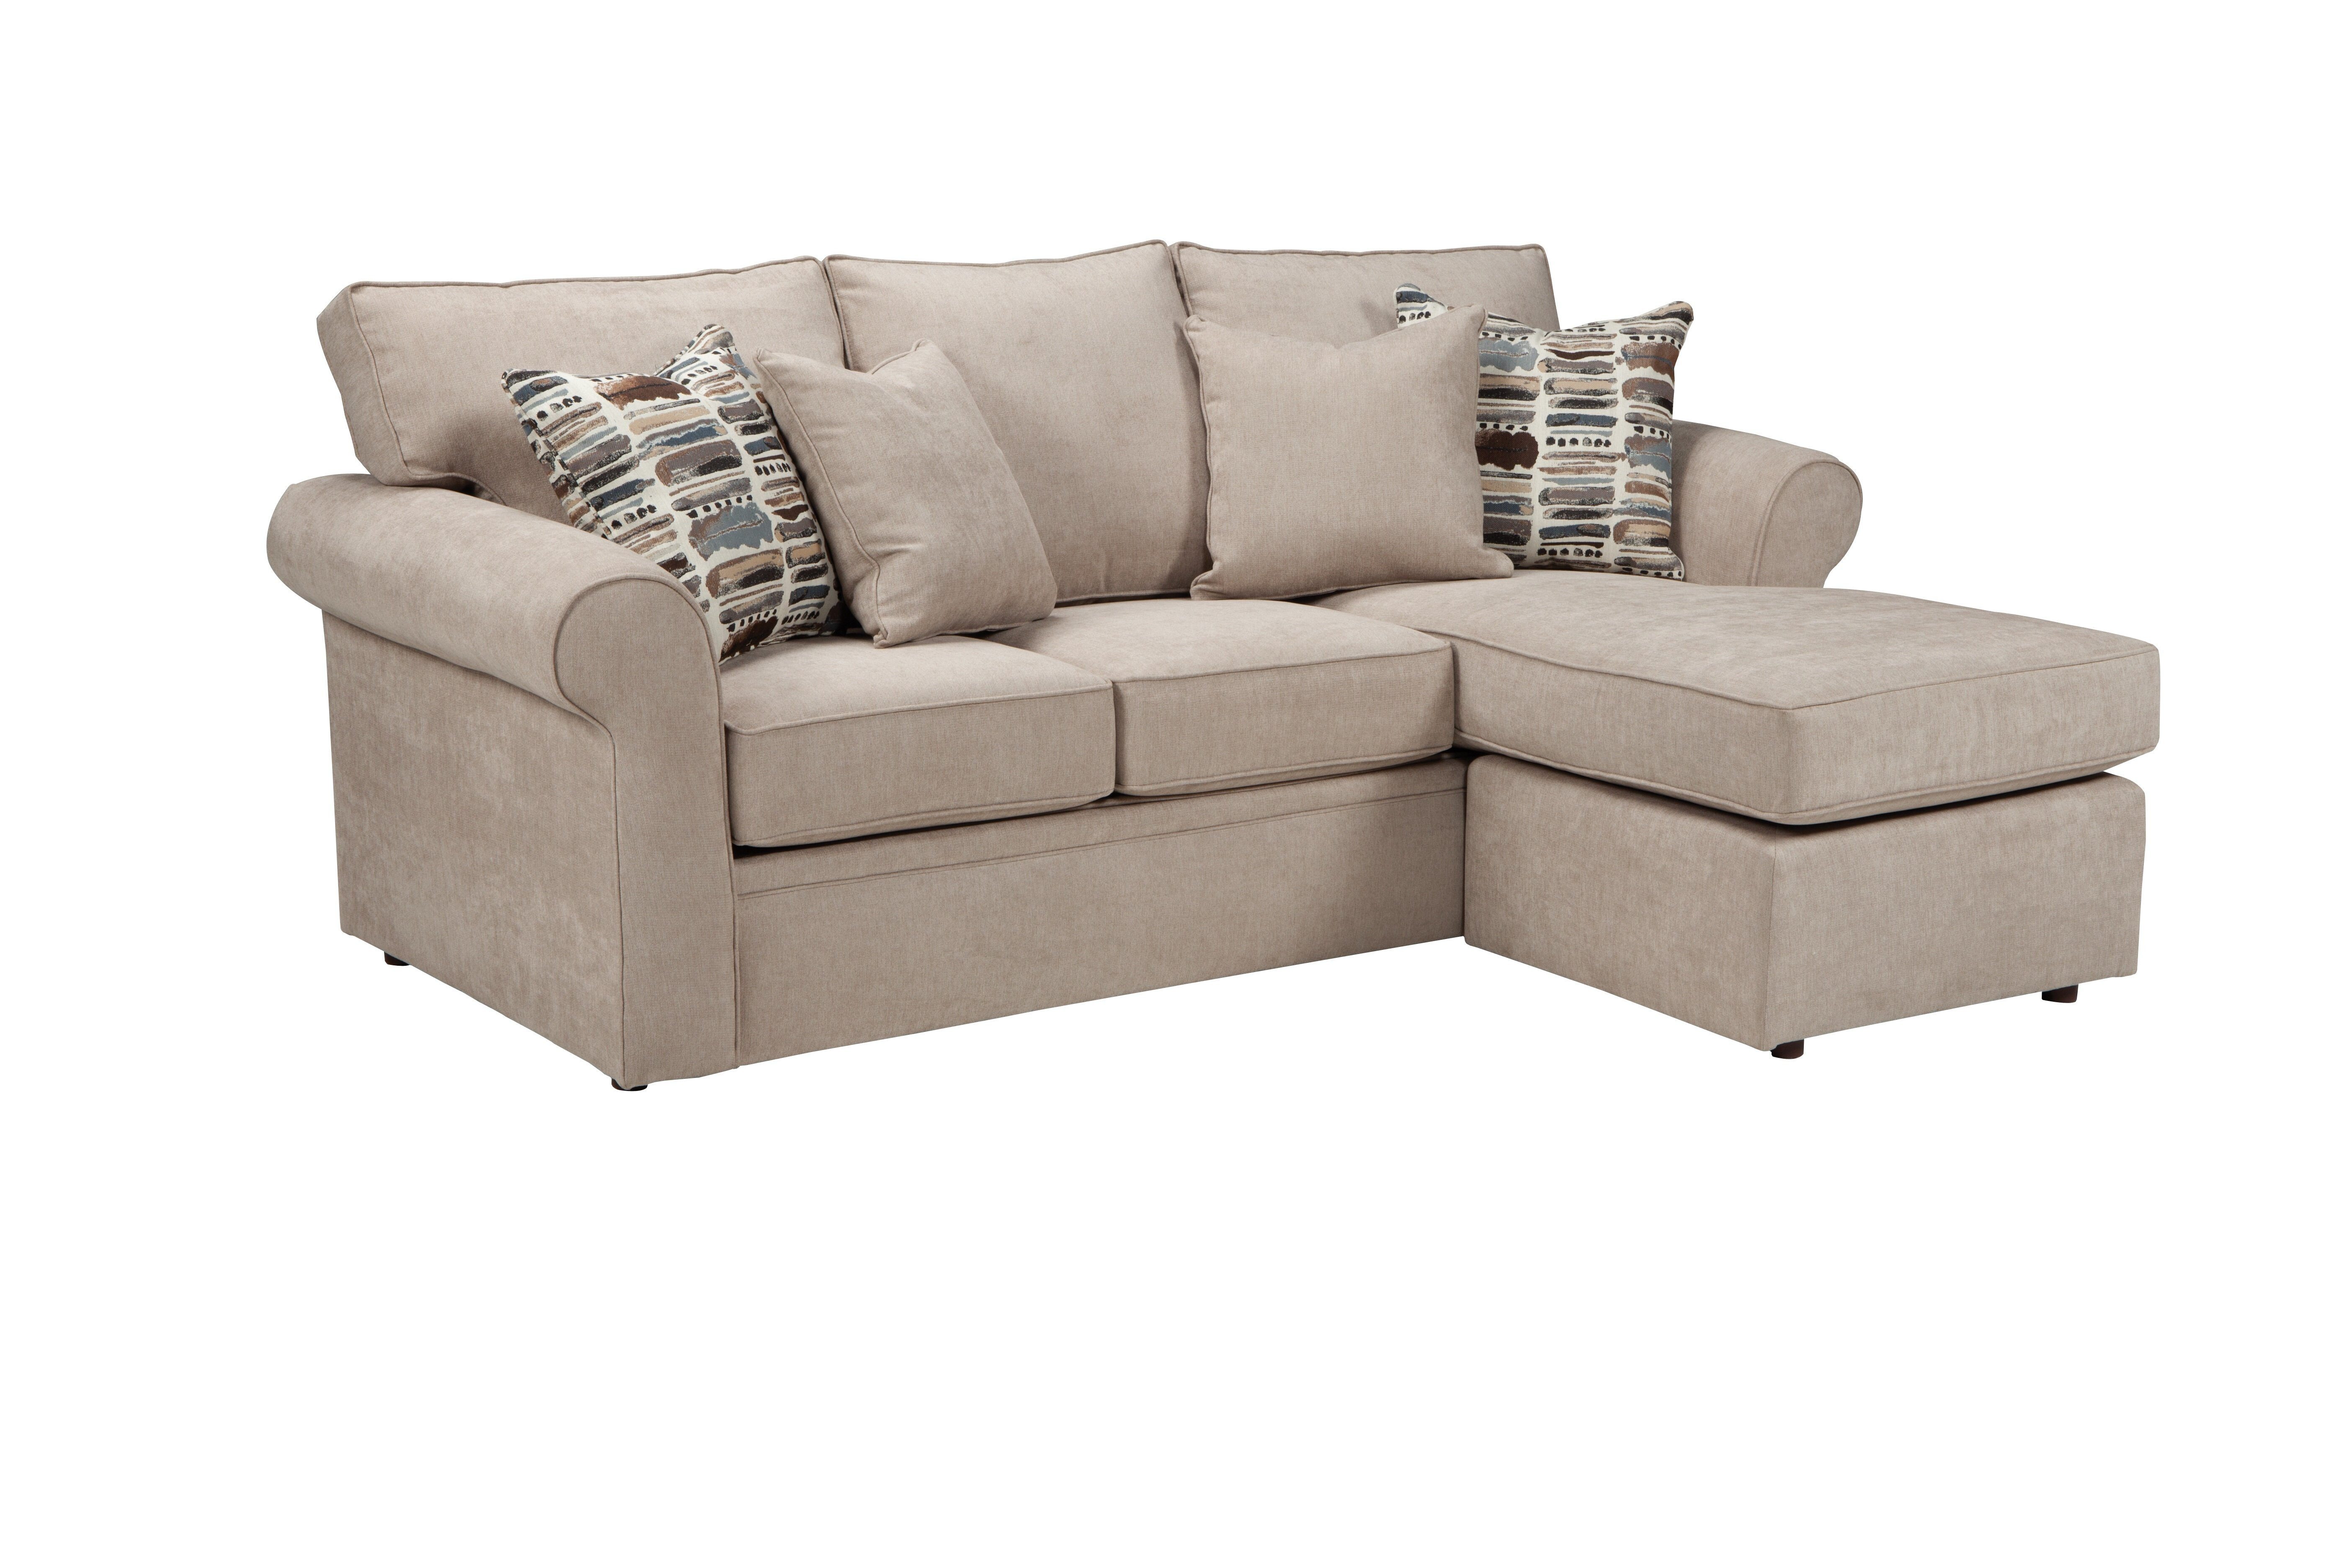 reversible lombardy sofa jllombardy sectional small w chaise shop